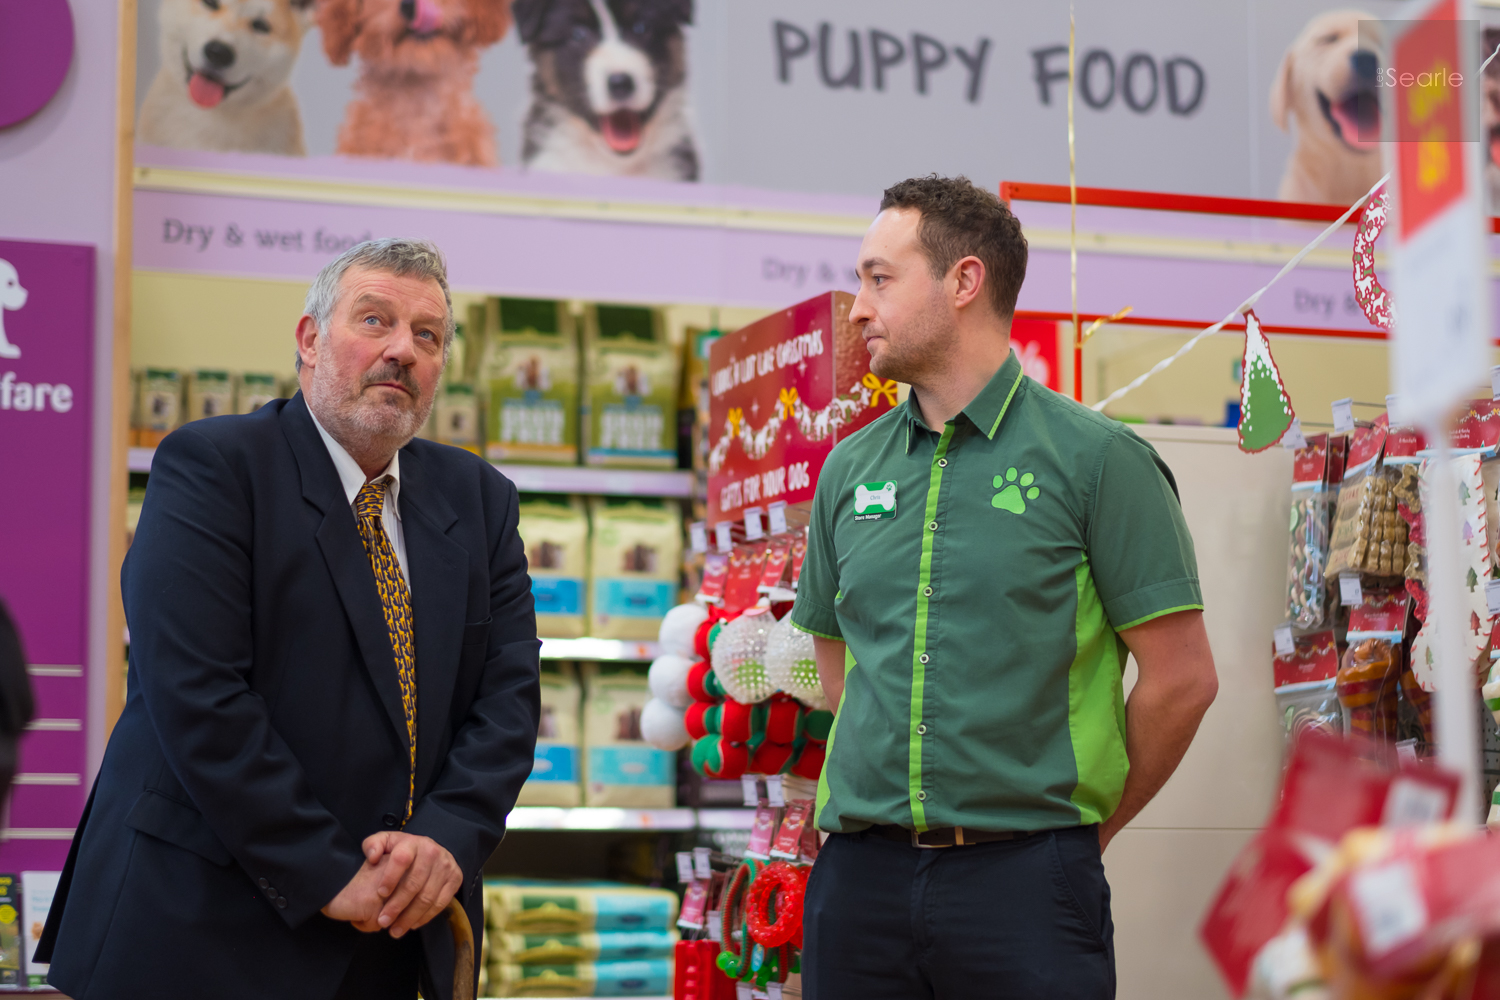 Pets-at-home-launch-penzzance-photography-8.jpg